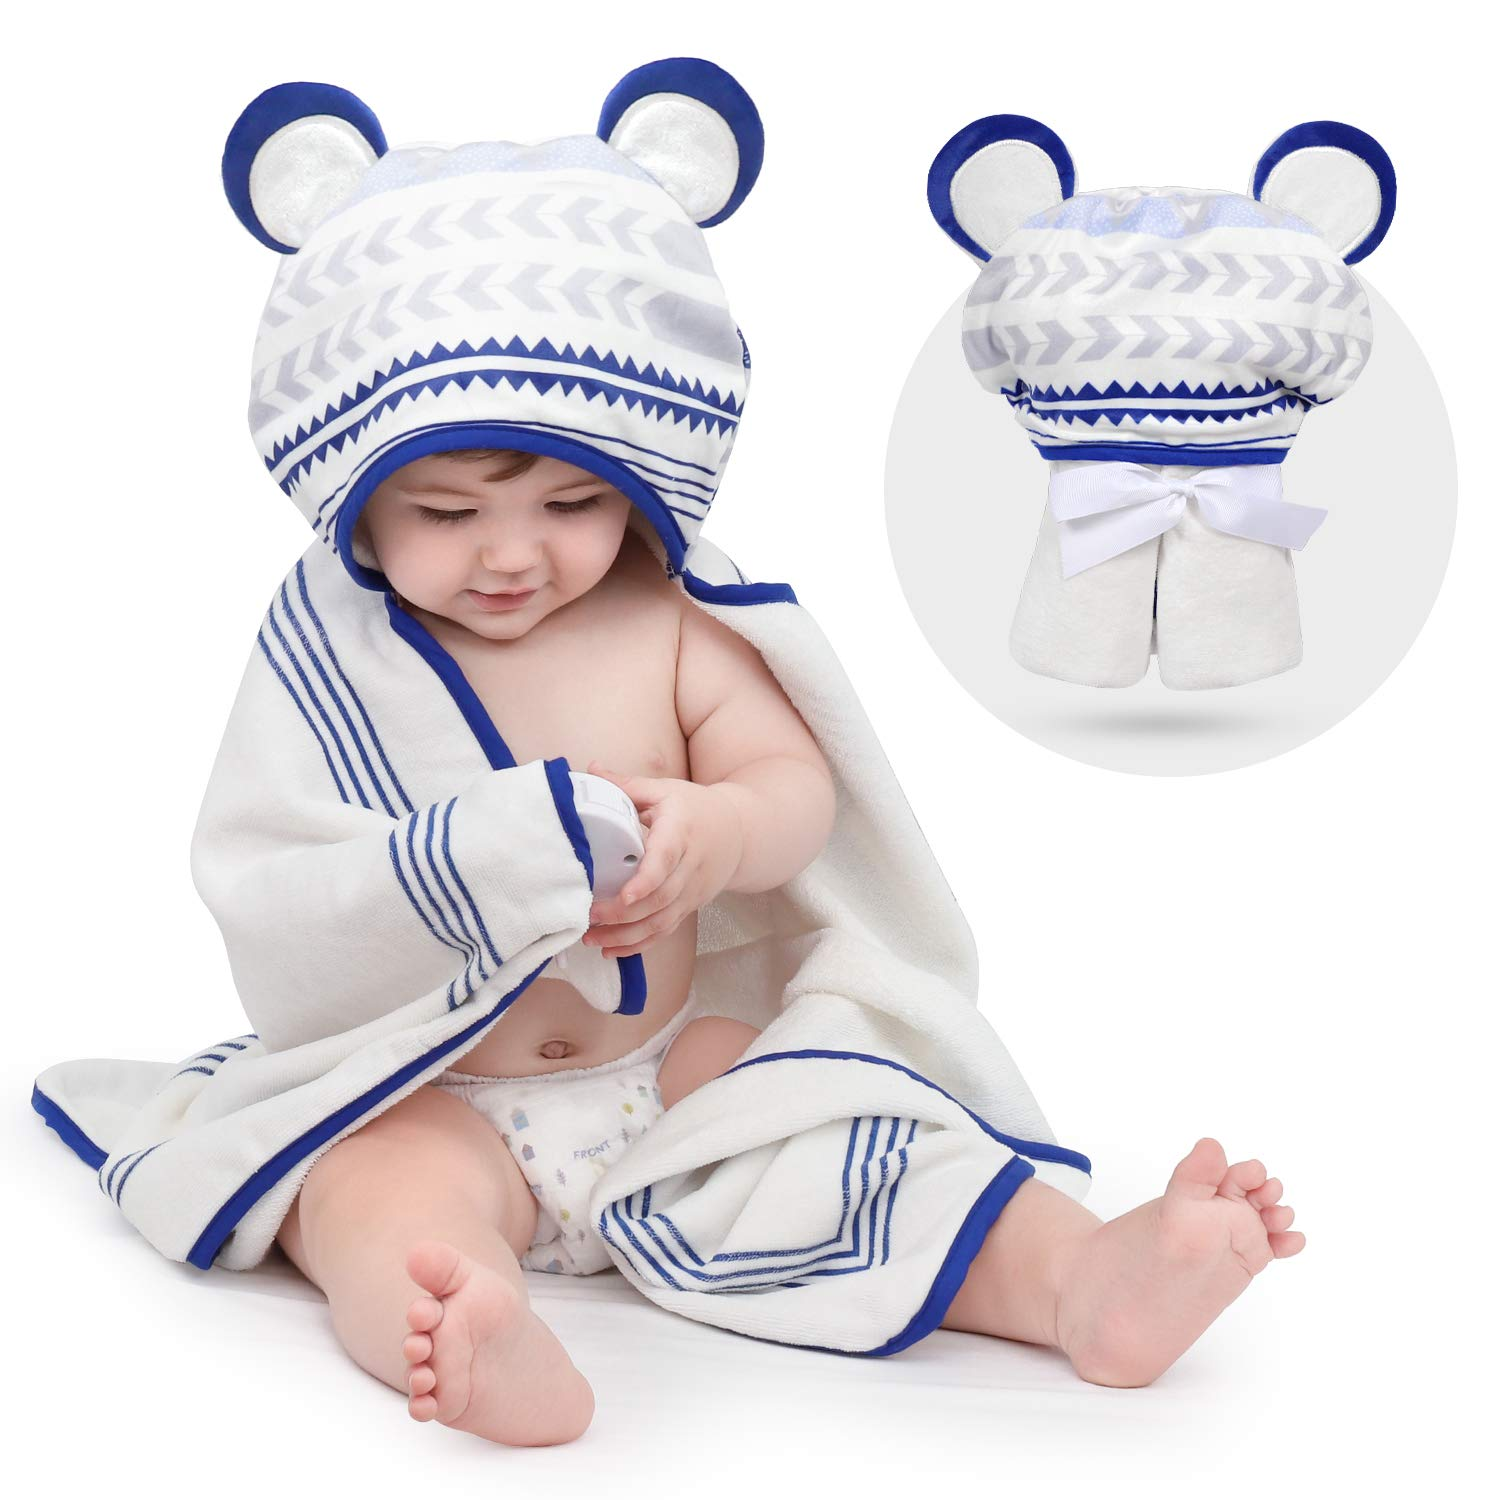 TILLYOU 100% Organic Cotton Baby Hooded Towel, Super Soft Absorbent Thick Bath Towel with Unique Design, Fluffy Plush Cozy, 33